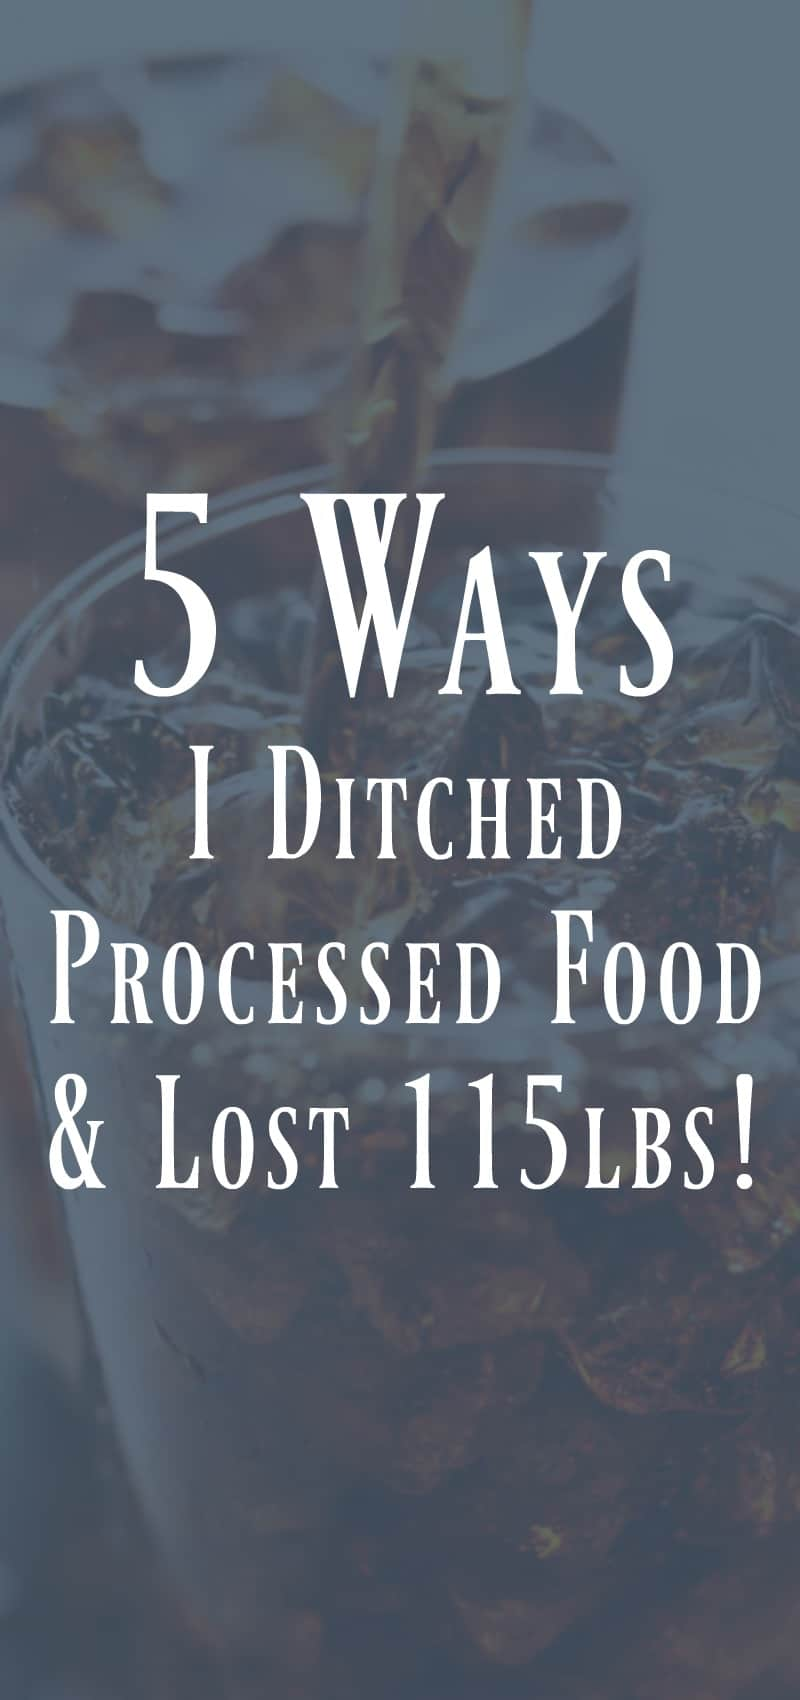 5 Ways I Ditched Processed Food and Lost 115lbs